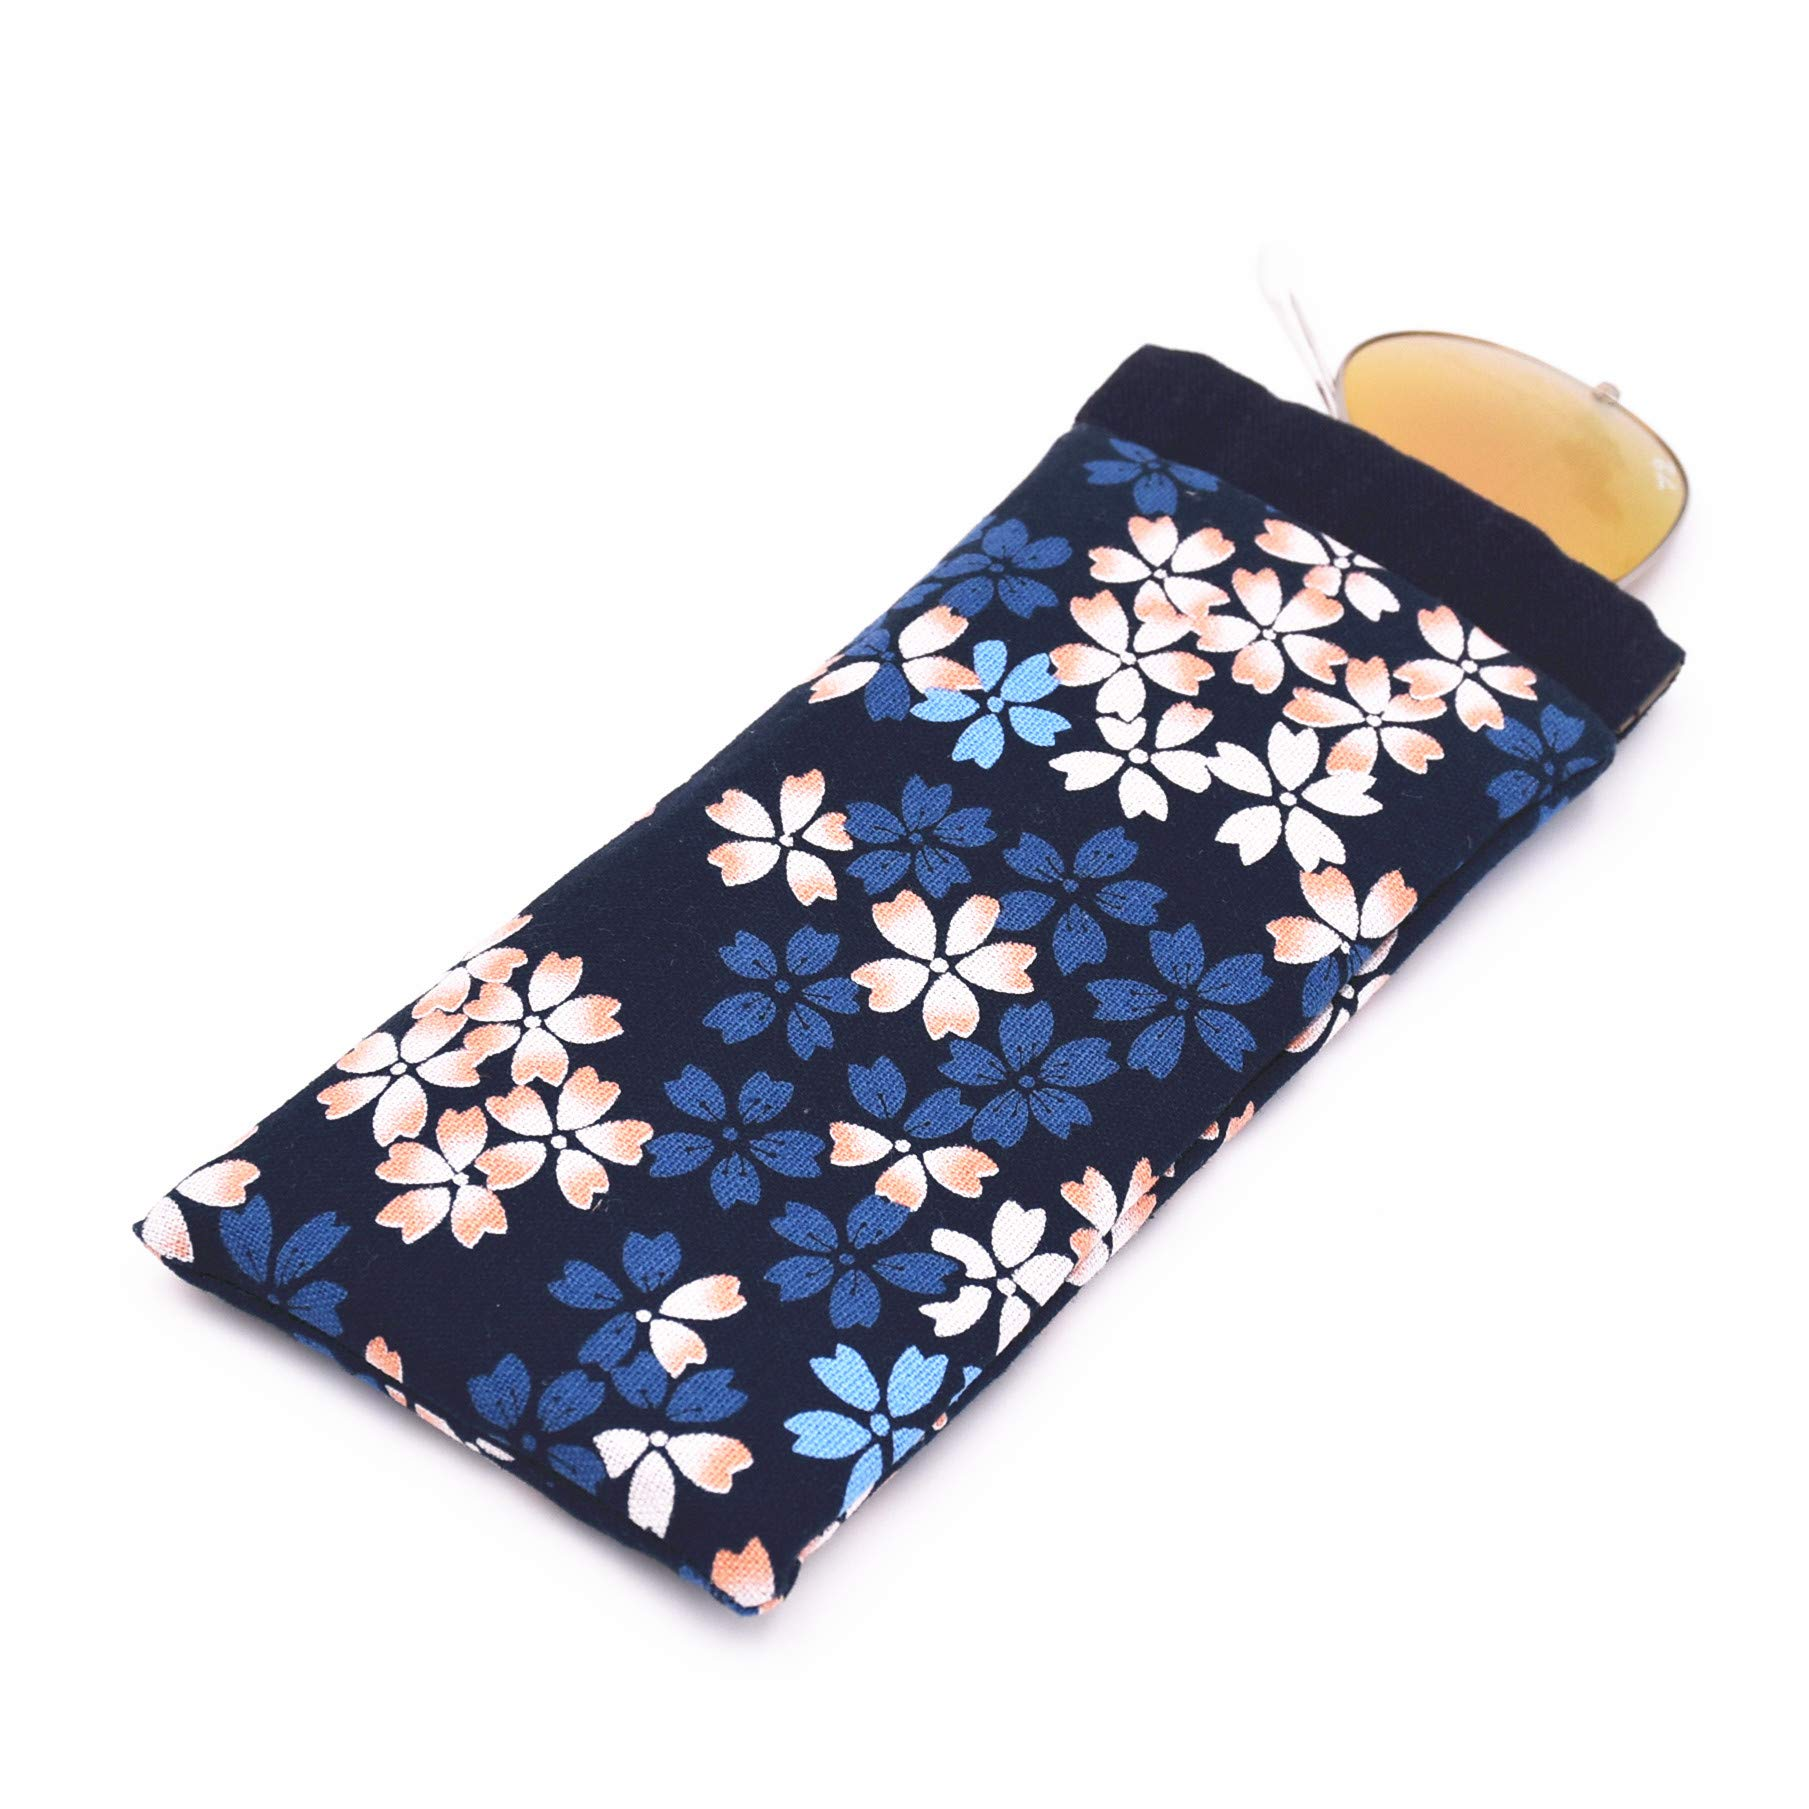 Eyeglass Cases Cotton Eyeglasses Pouch Sunglasses bag with Spring Clip (Sakula 2 PCS) by GGT (Image #5)